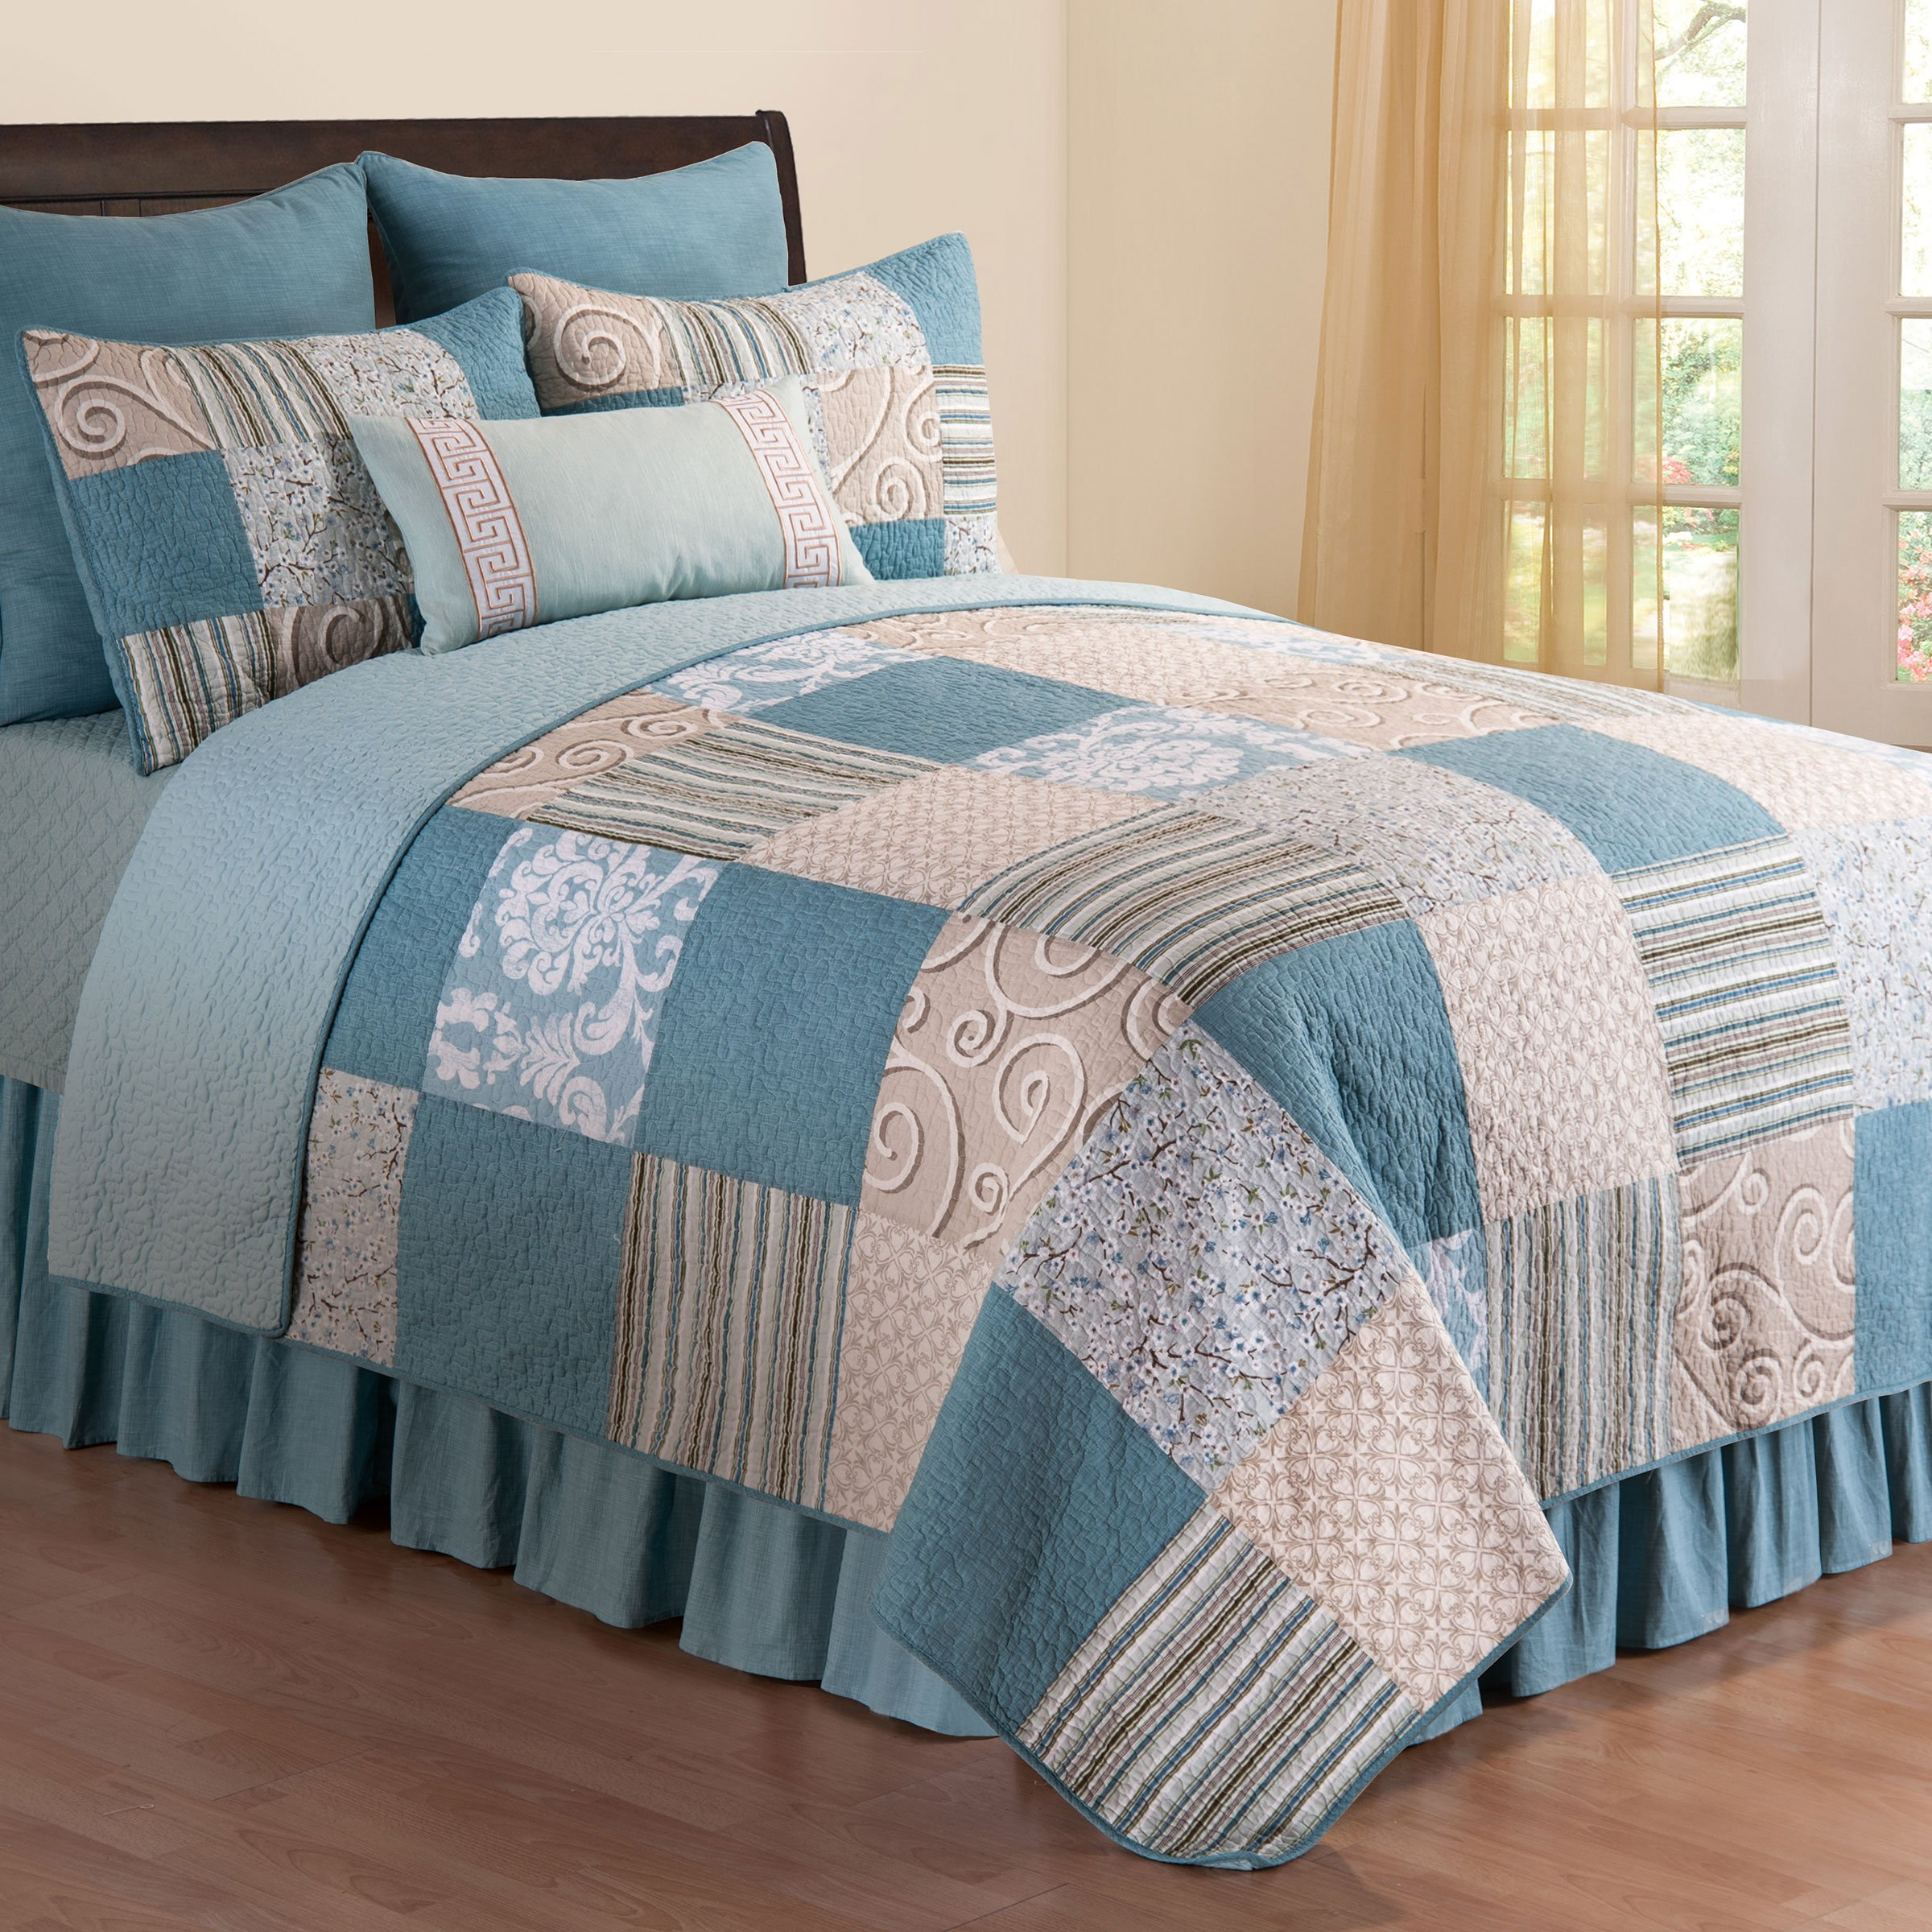 Melinda Full/Queen 3 Piece Quilt Set by C & F Home